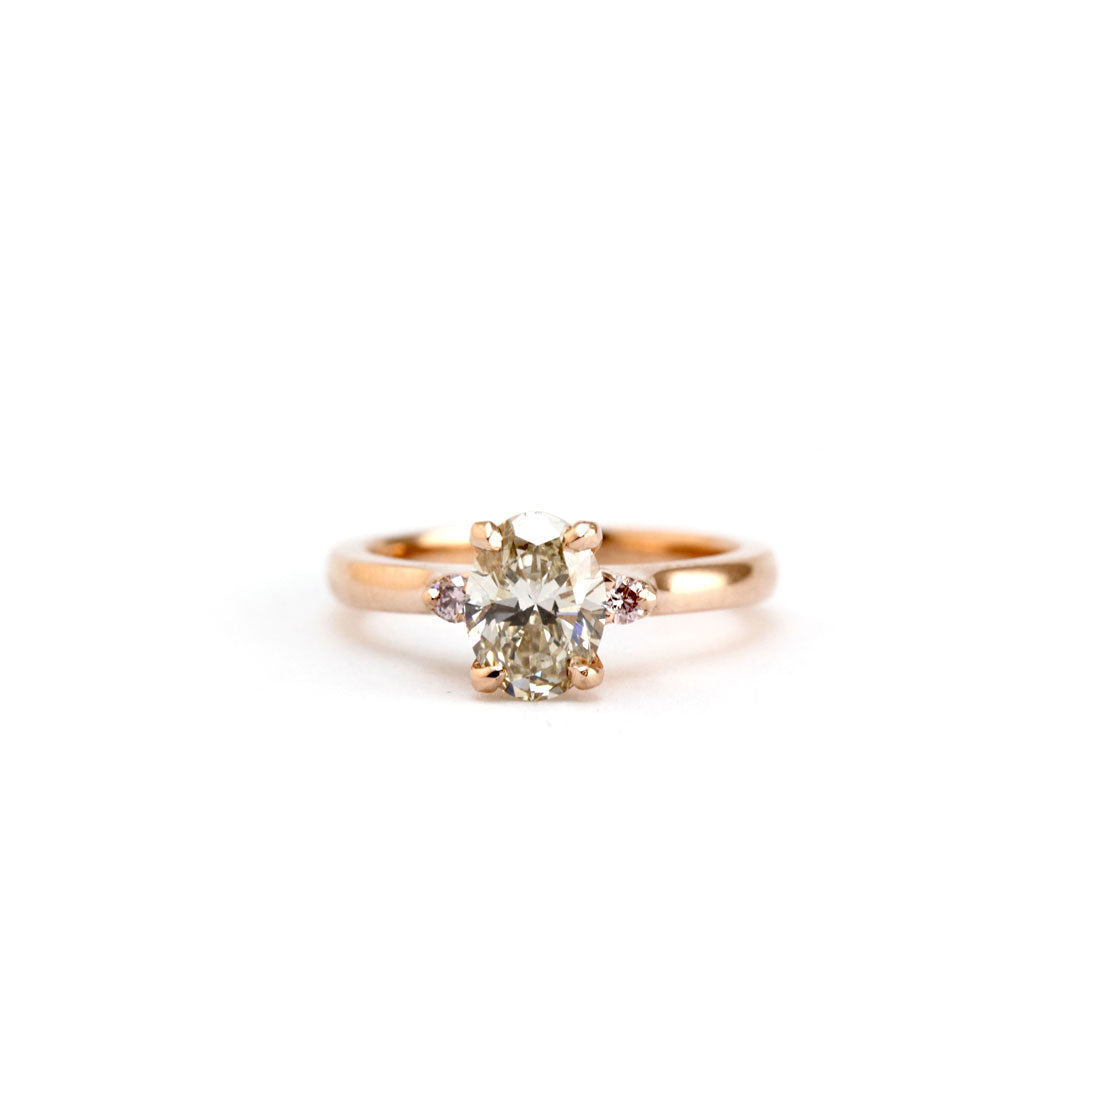 Oval Champagne diamond engagement ring with pink argyle diamonds in 18ct rose gold Bespoke Custom Handmade Jewellery